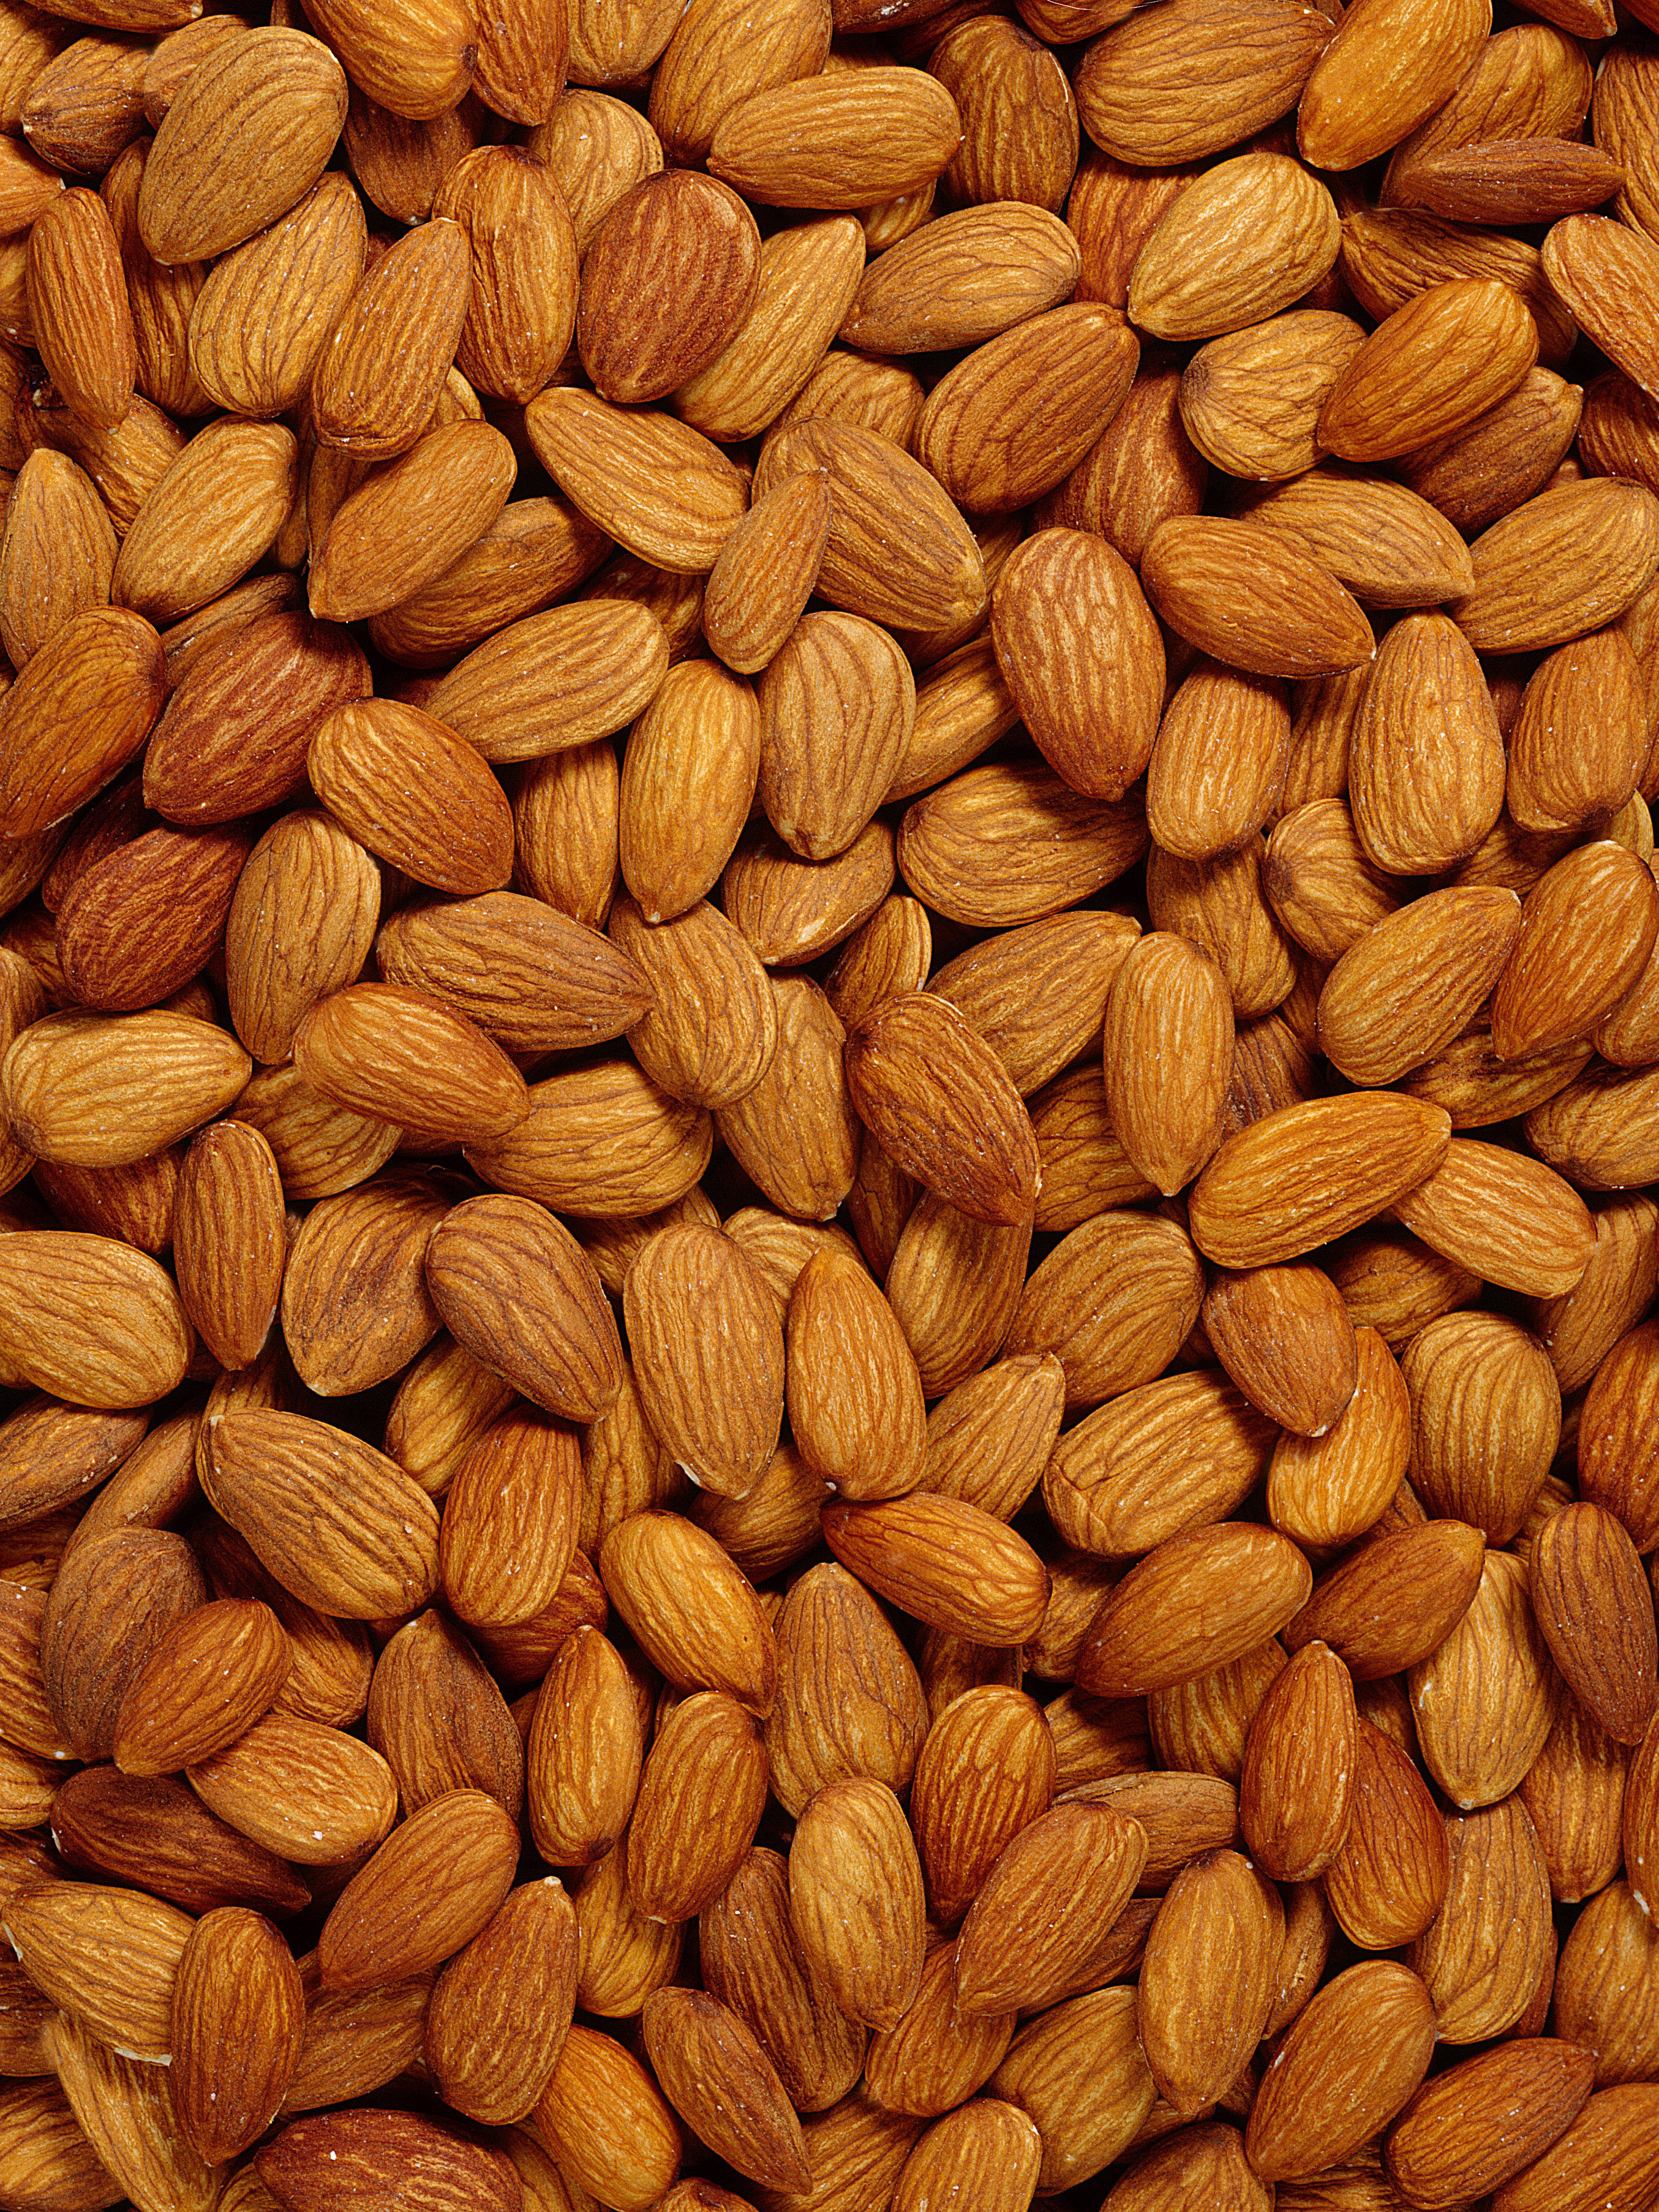 food nuts almond Food HD Wallpaper